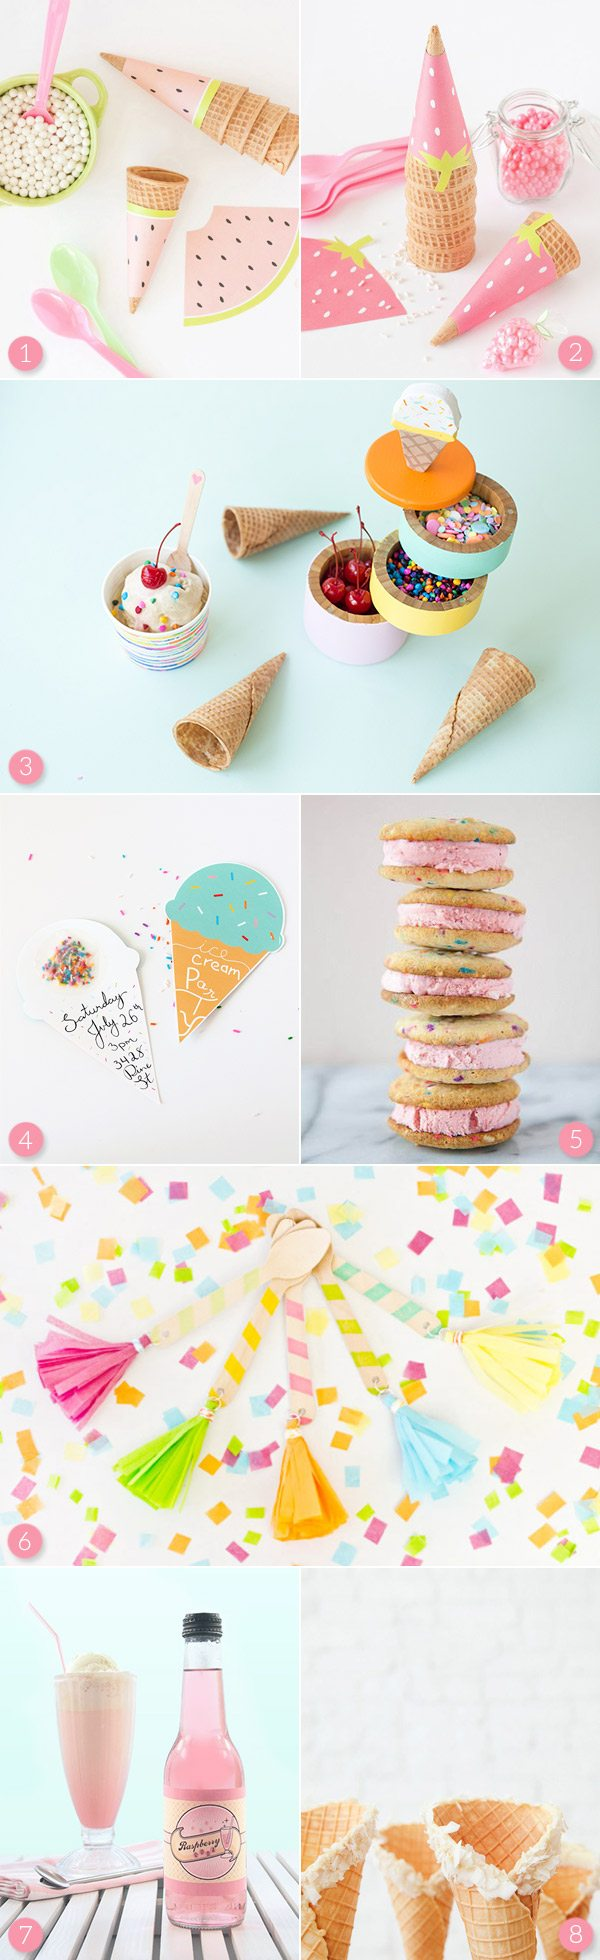 Ice Cream Party Ideas from @cydconverse